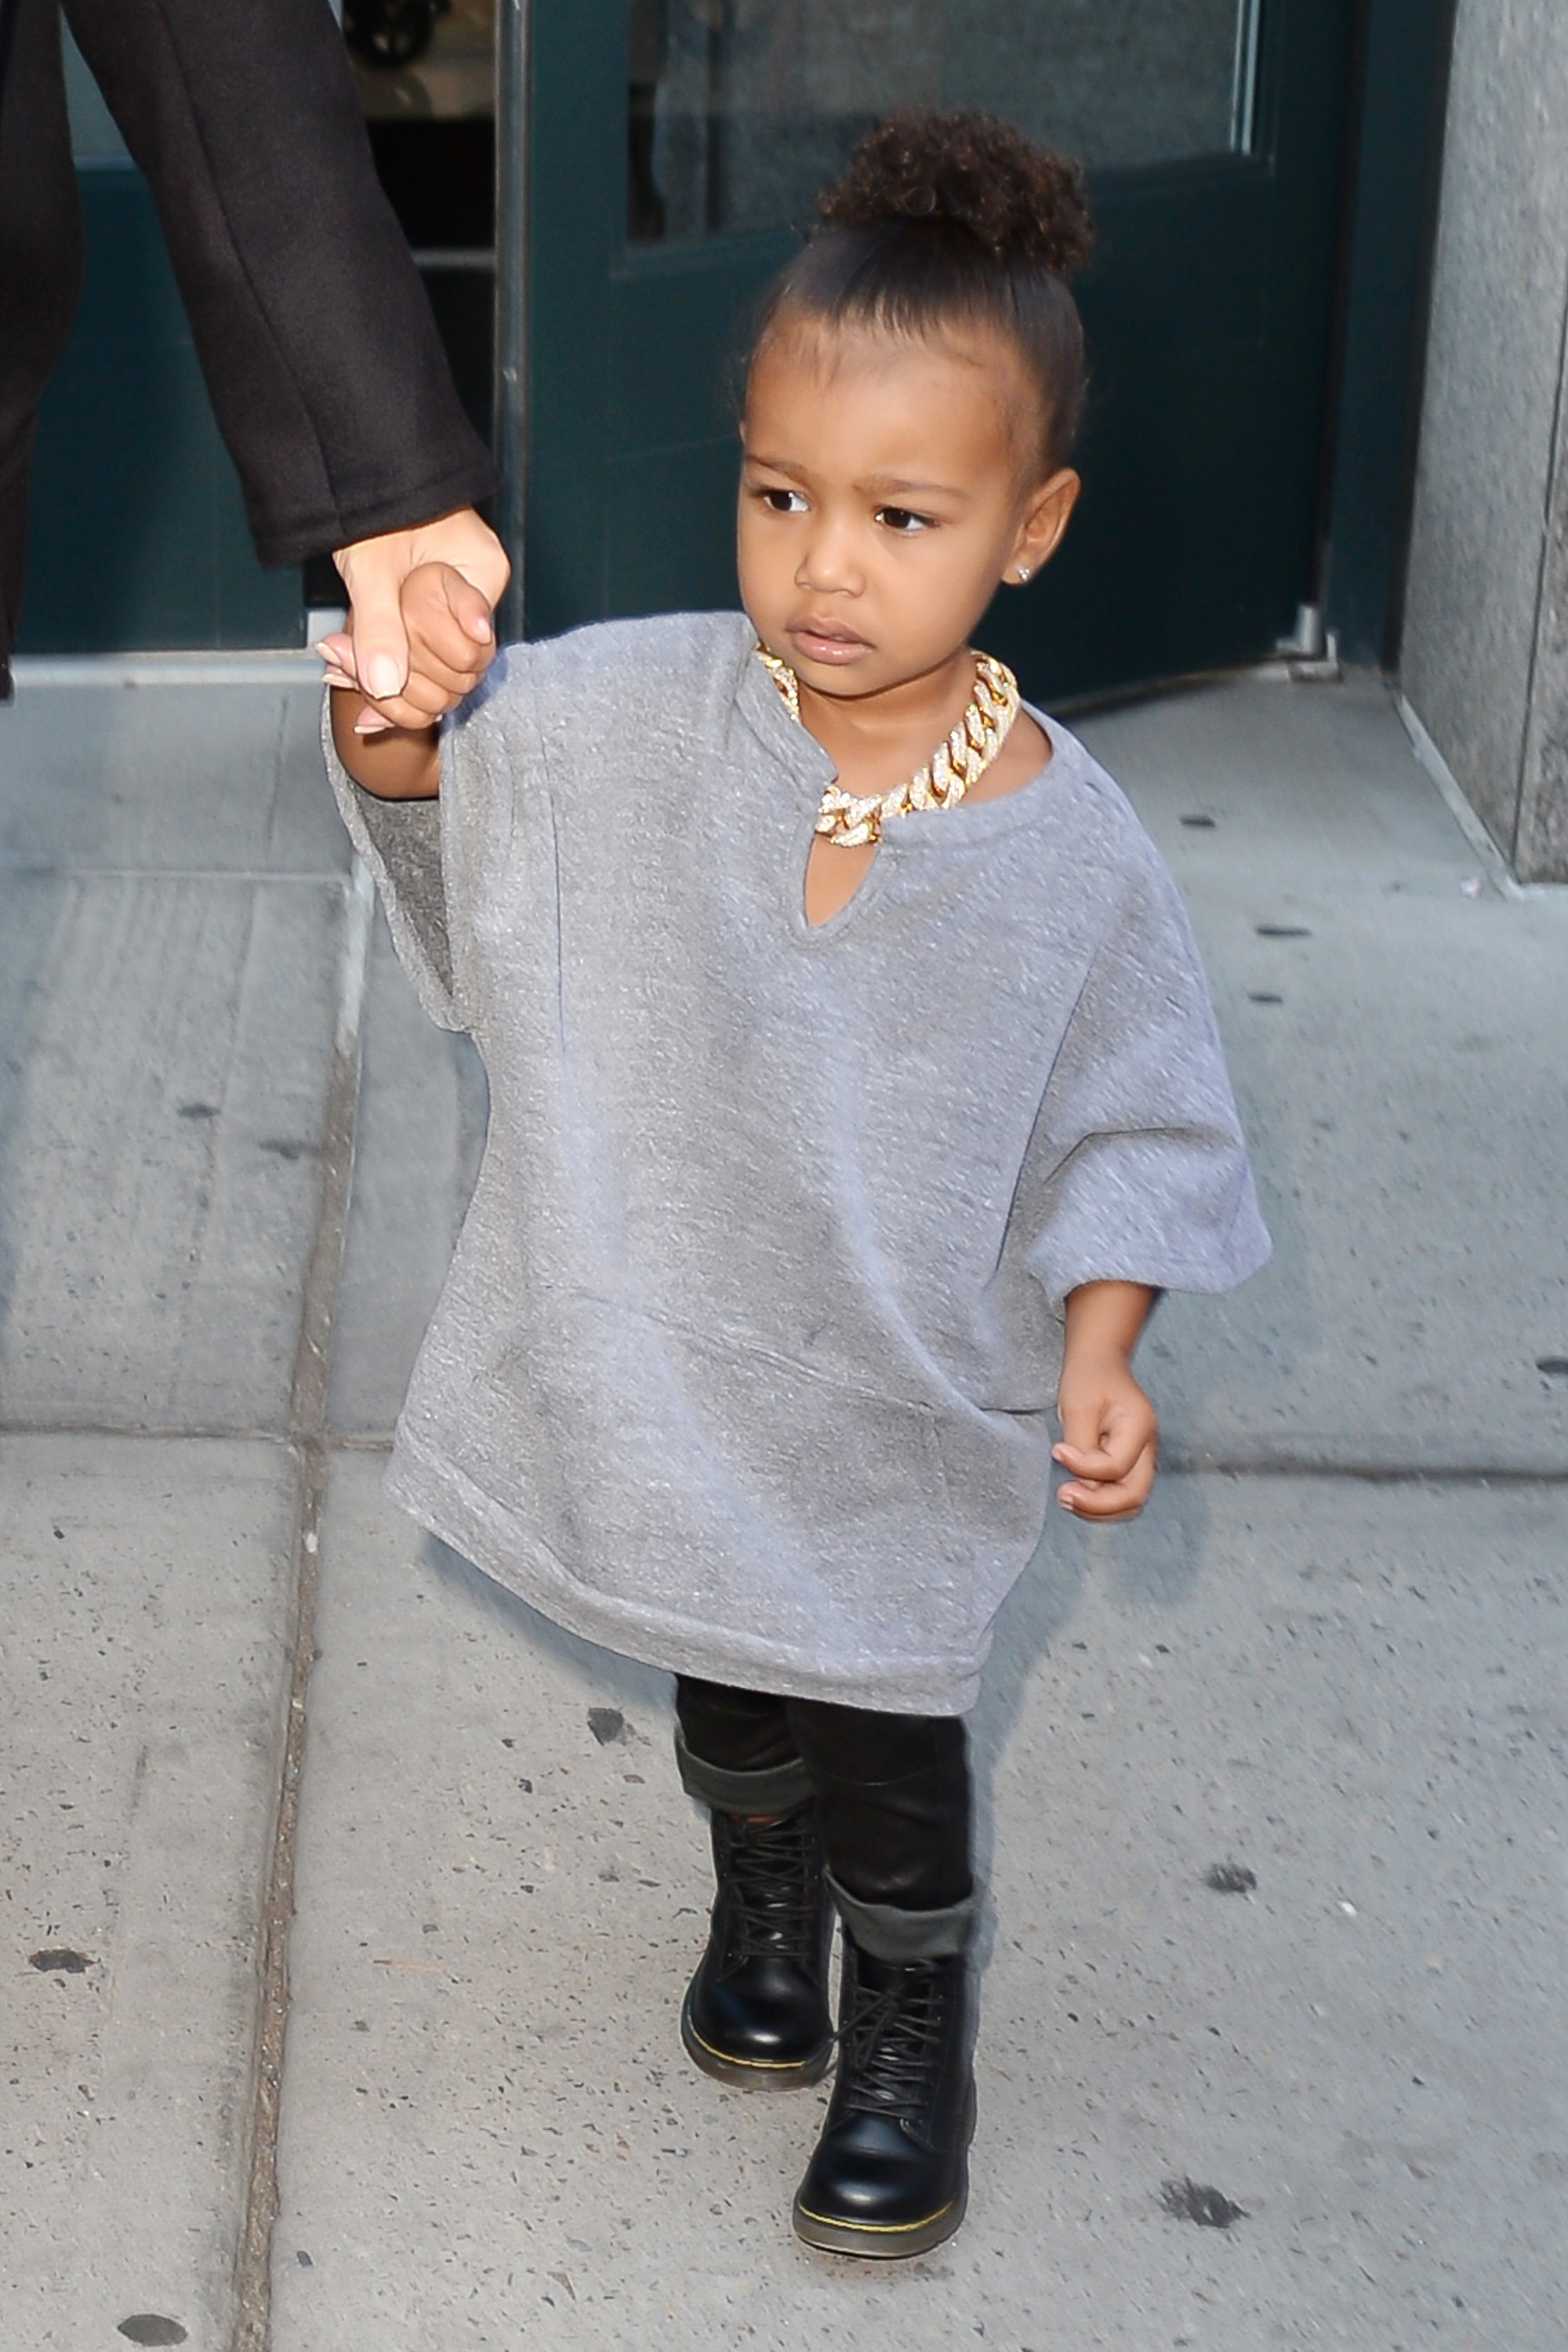 11 Times North West's Outfits Made You Envious Of A Toddler